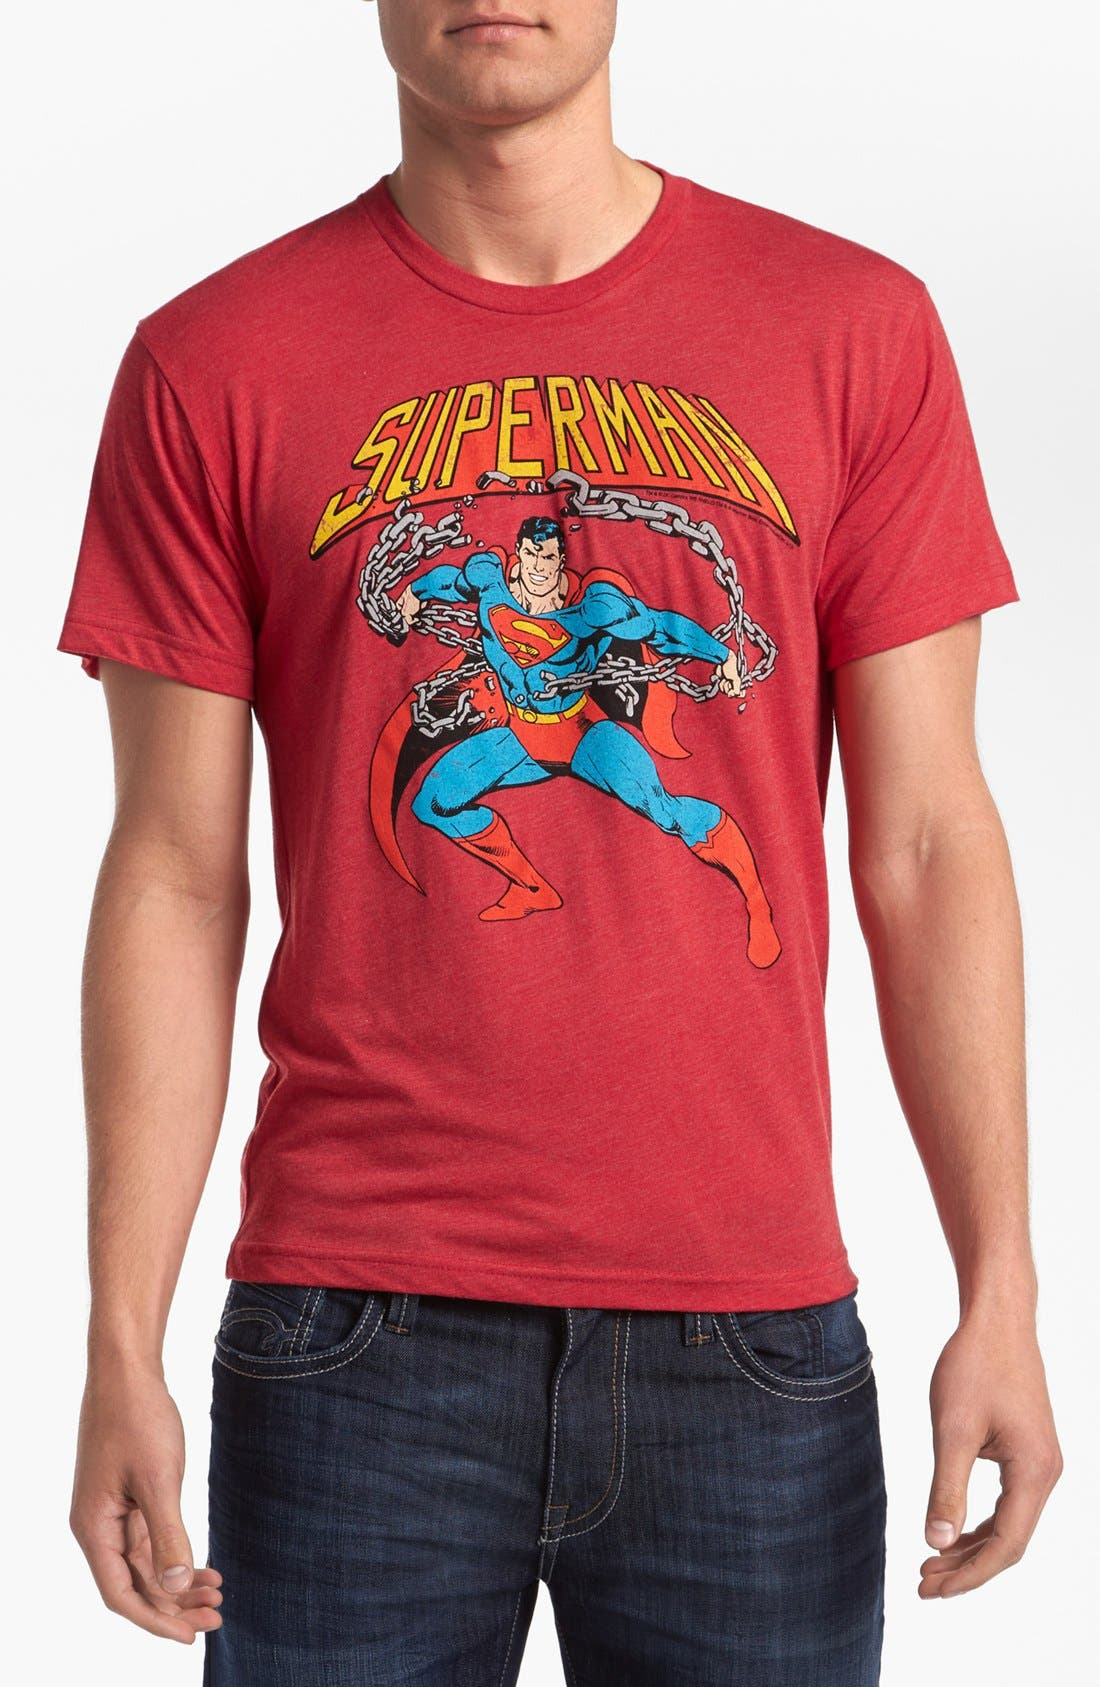 Alternate Image 1 Selected - Free Authority 'Action Hero' T-Shirt